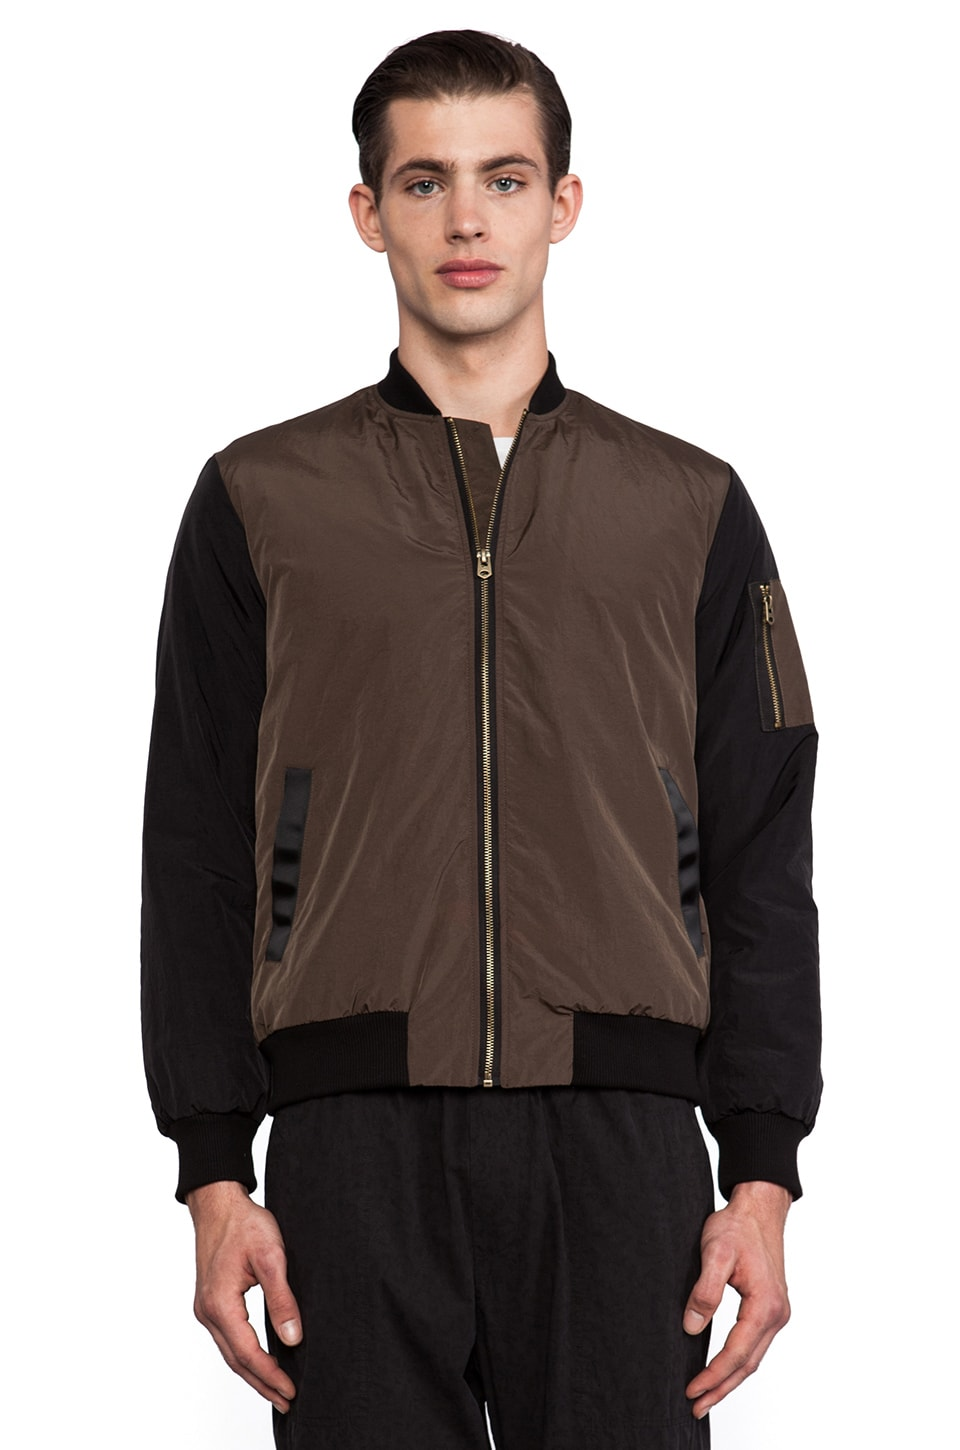 Shades of Grey by Micah Cohen Filled Bomber in Olive & Black